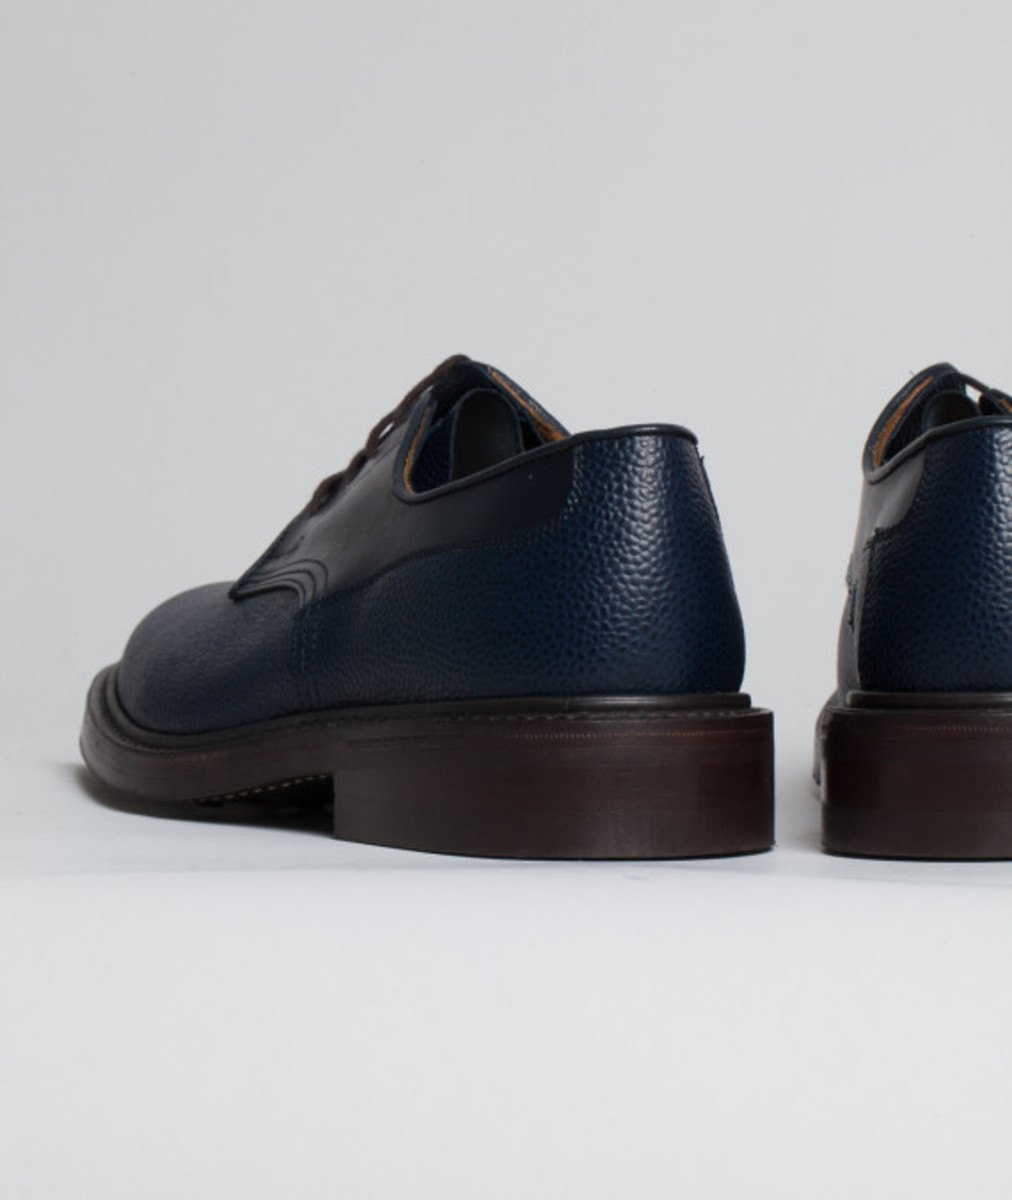 norse-projects-trickers-woodstock-11